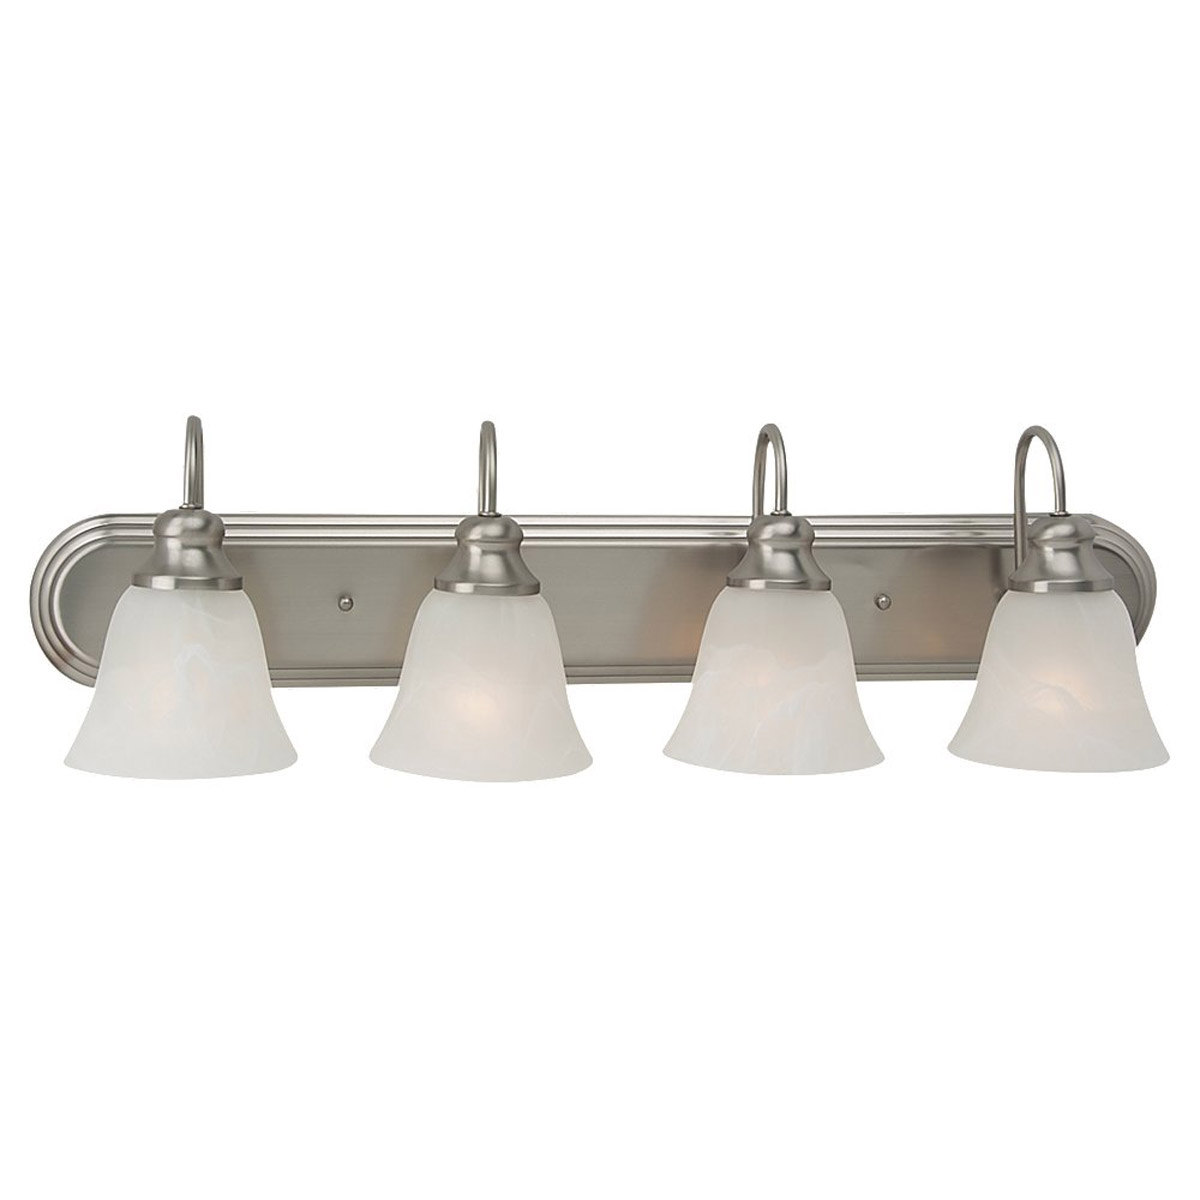 Sea Gull Lighting Windgate 4 Light Bath Vanity in Brushed Nickel 44942BLE-962